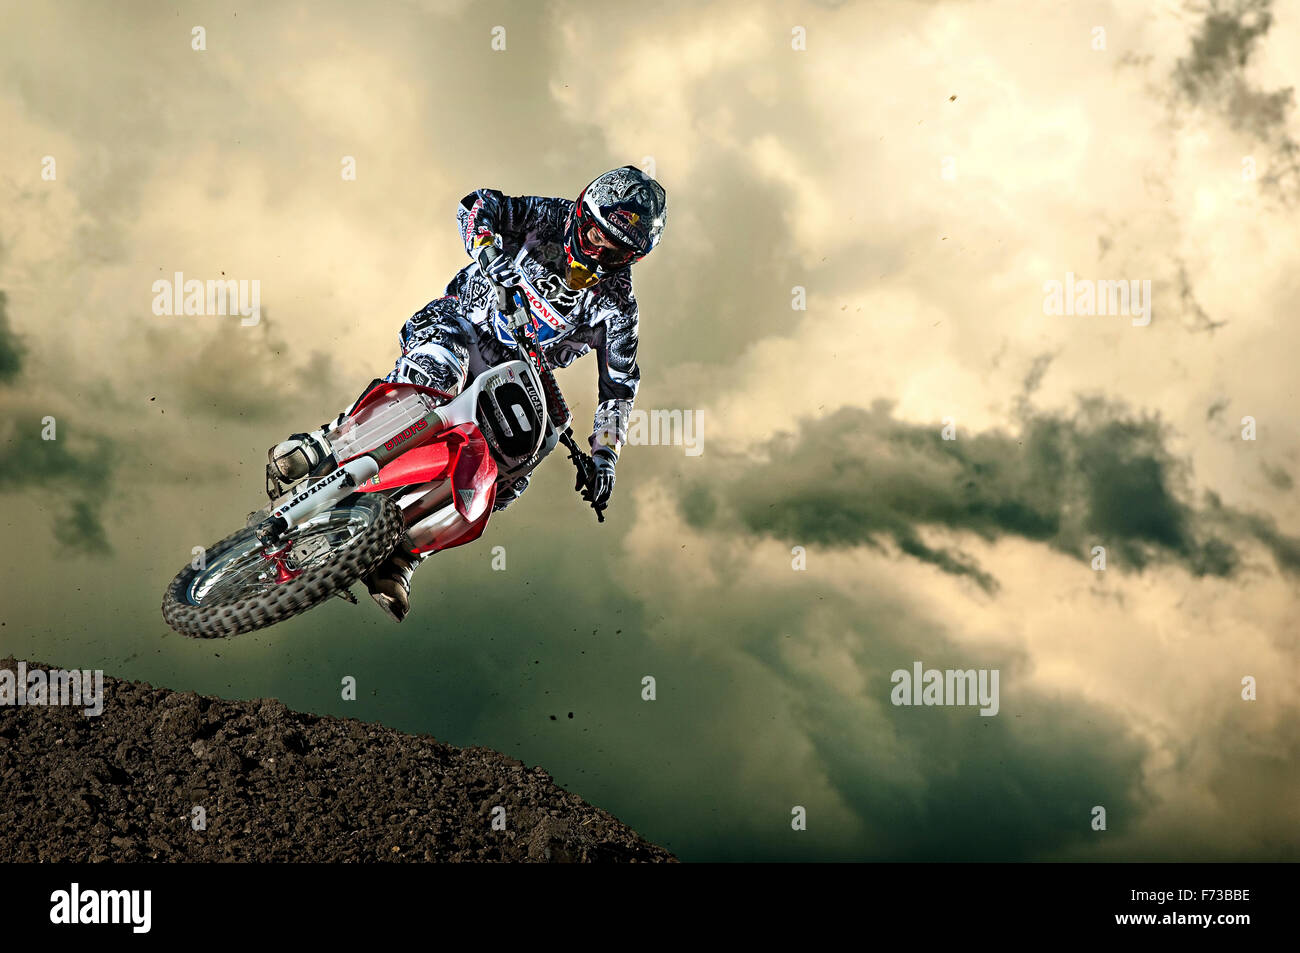 Ivan Tedesco crests over a hill at the Lakewood, Colorado Outdoor National. - Stock Image